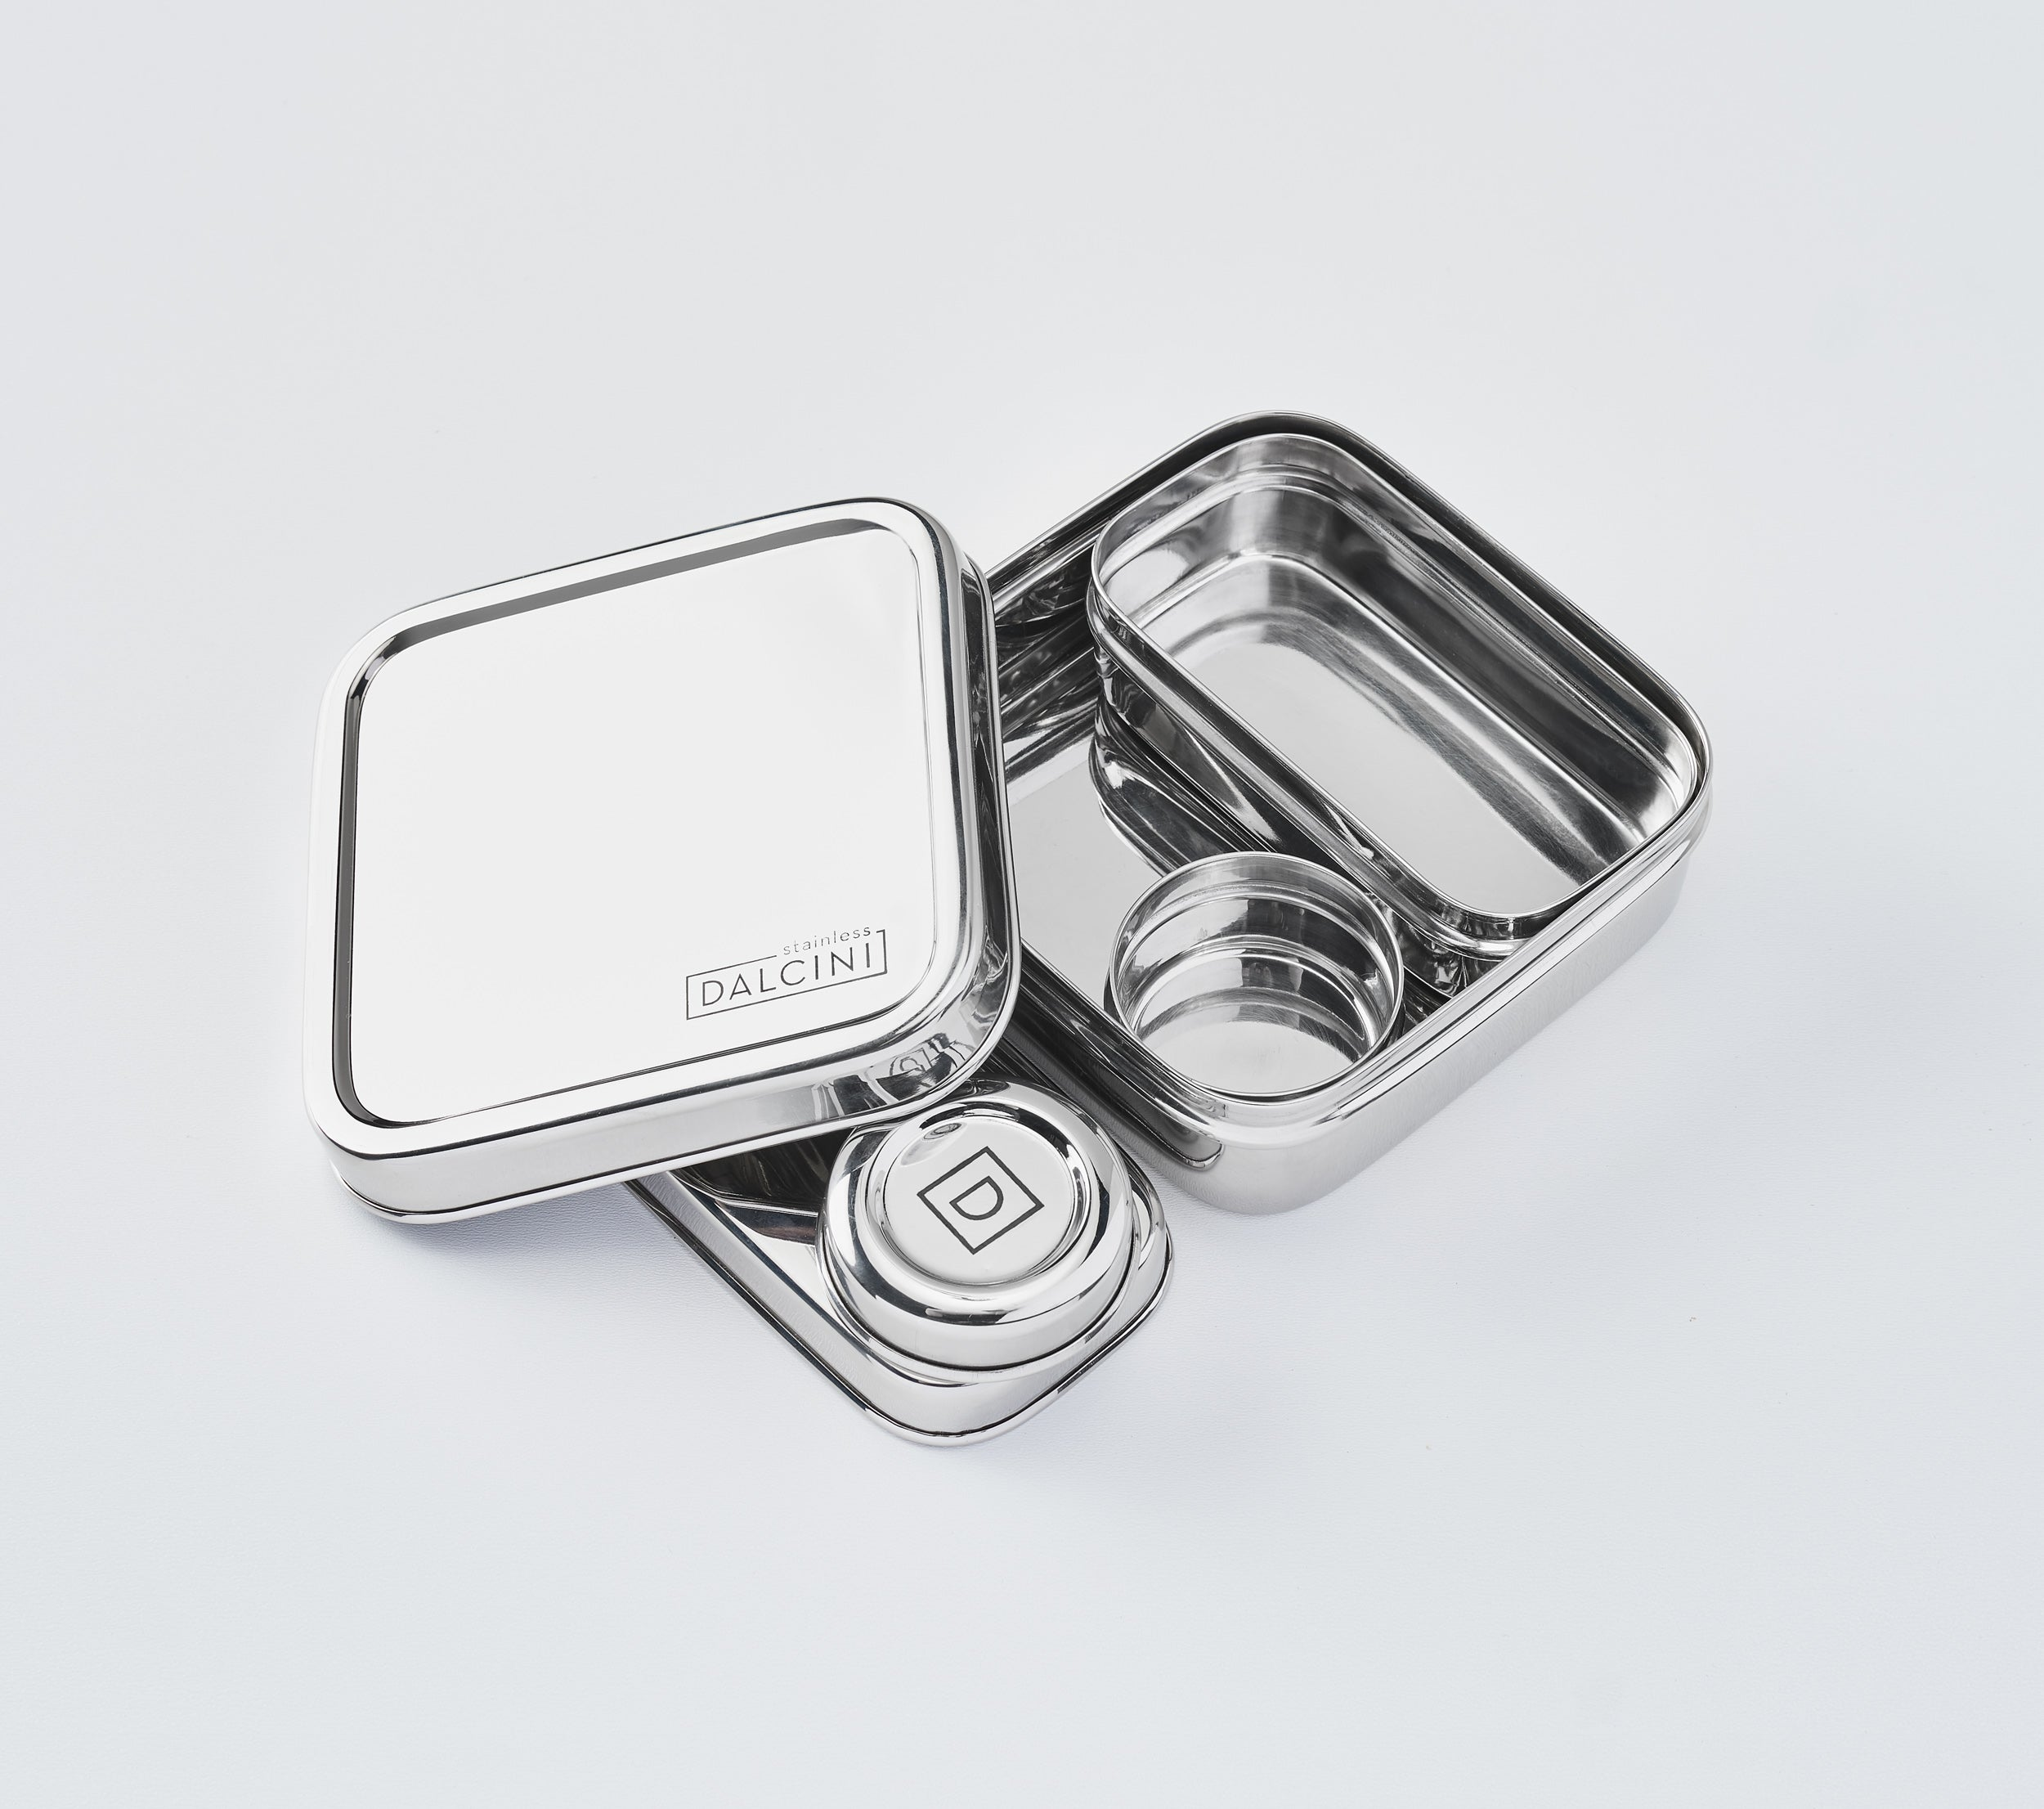 Condiment Container - DALCINI Stainless